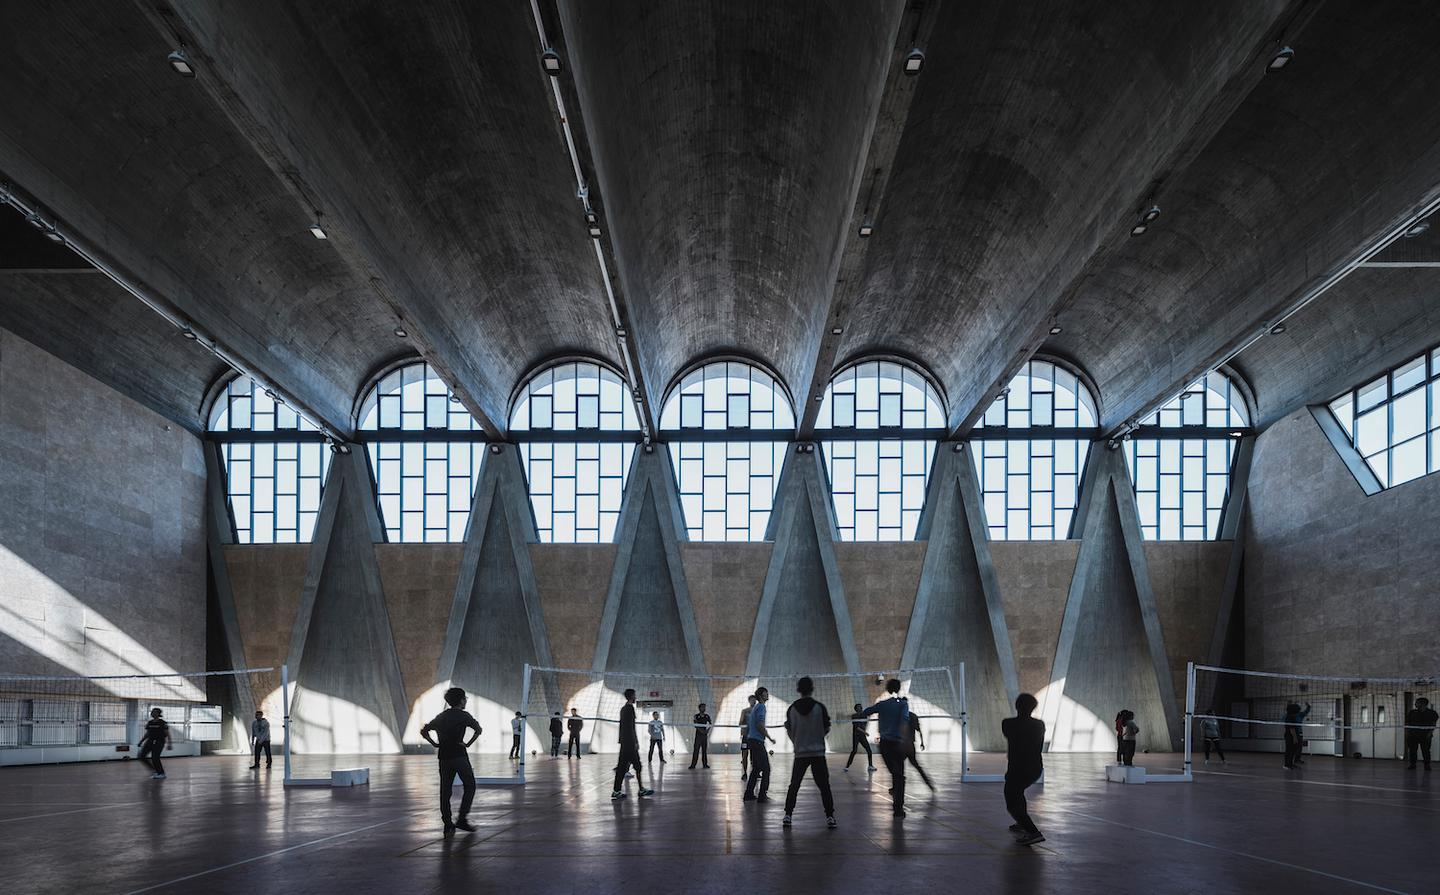 China's Terrence Zhang took this moody photograph of the Gymnasium of the New Campus of Tianjin University, China, by Atelier Li Xinggang. The image was entered into the Buildings In Use category